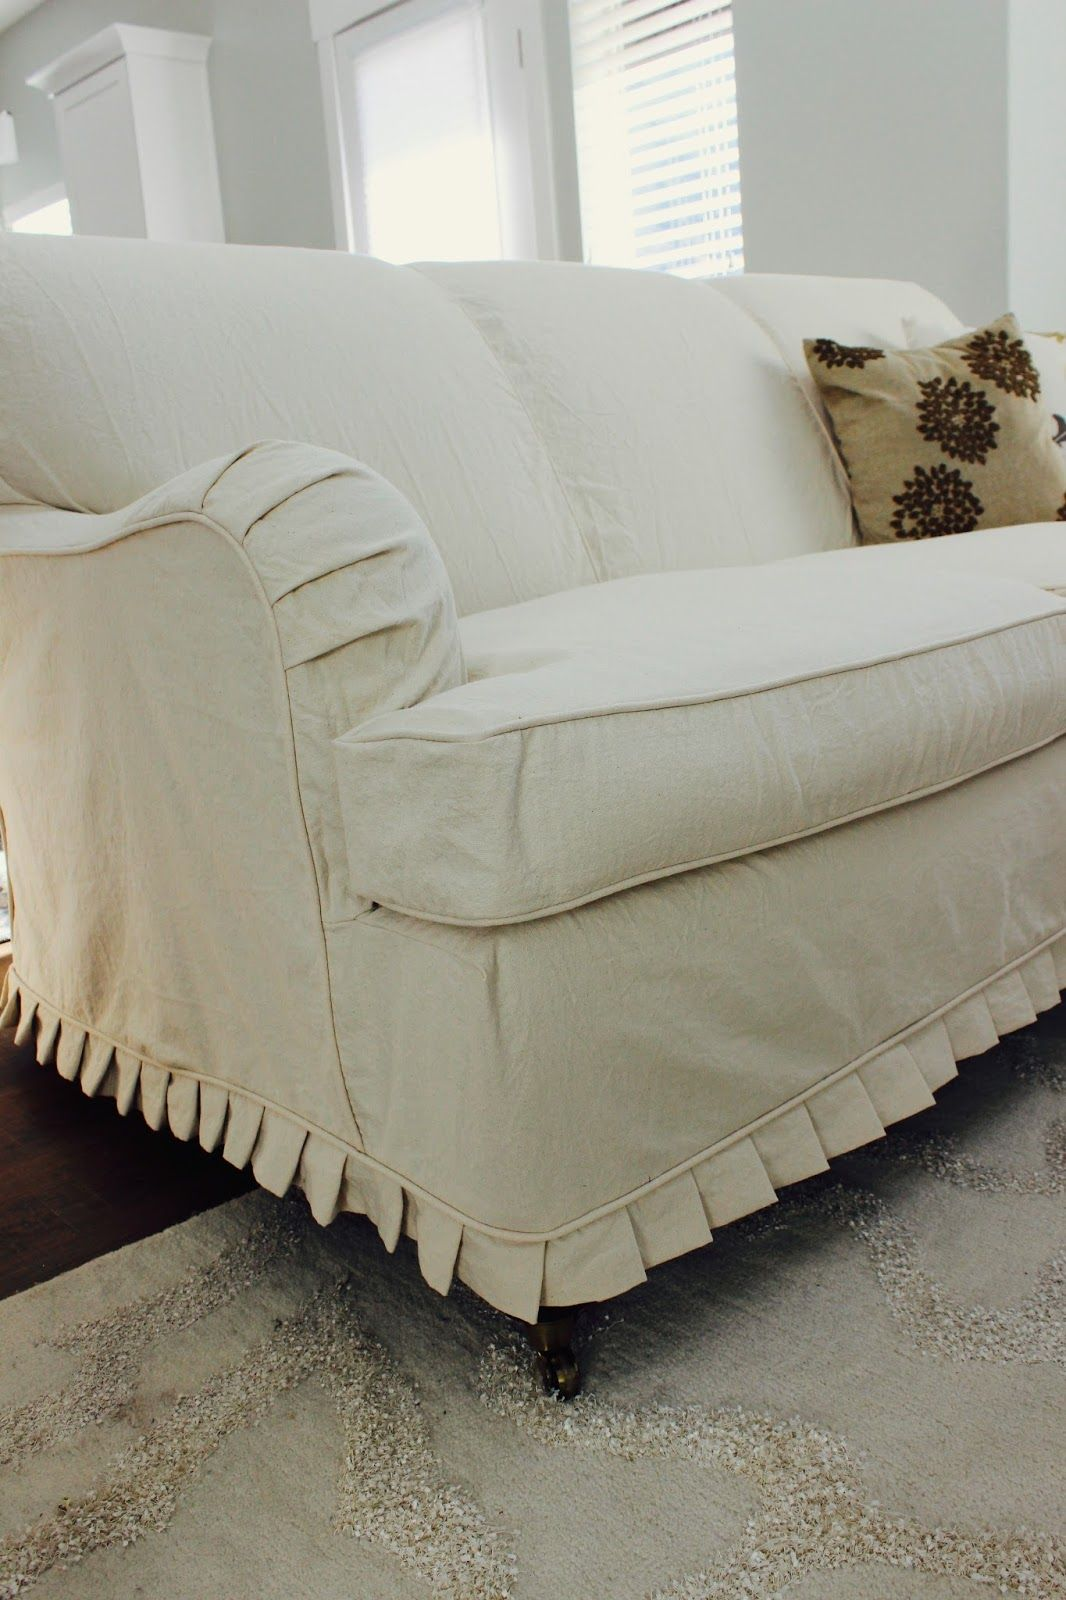 Nice Cream Couch Covers Best Cream Couch Covers 70 On Living Room Sofa Ideas With Cream Couch Covers Slipcovers For Chairs Furniture Slipcovers Custom Sofa